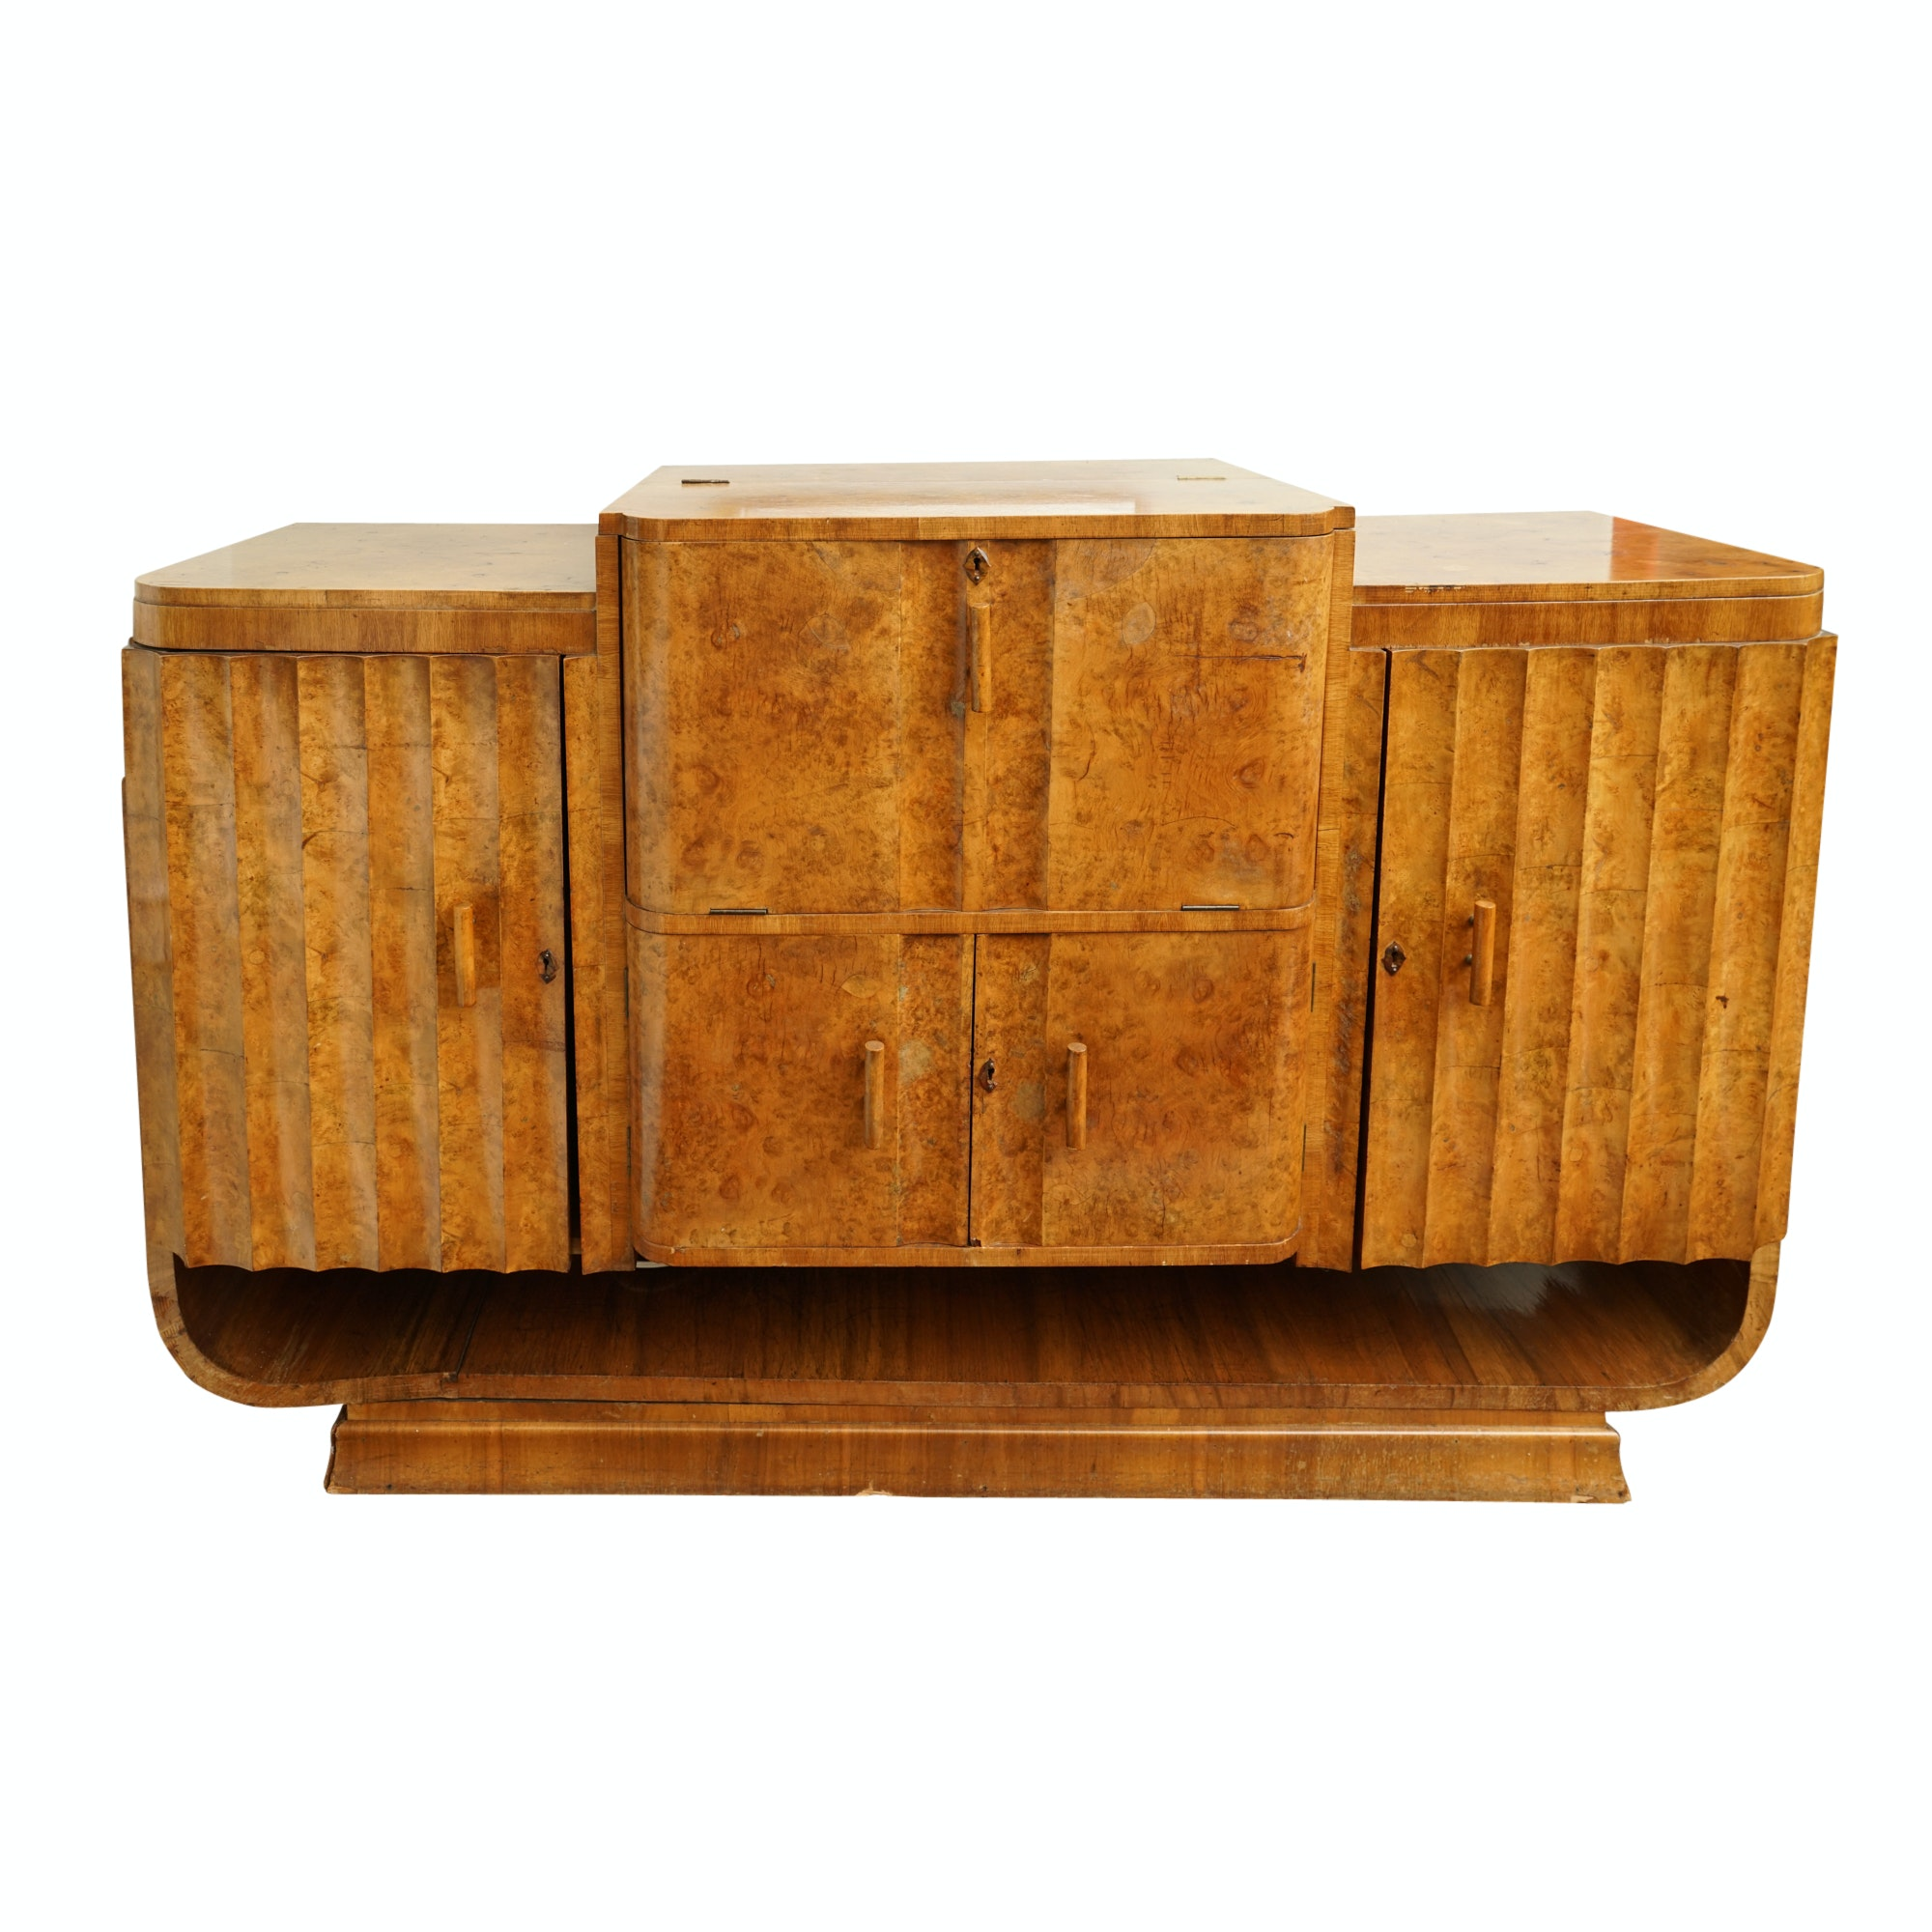 English Art Deco Burl Walnut Bar Cabinet, probably Epstein Brothers